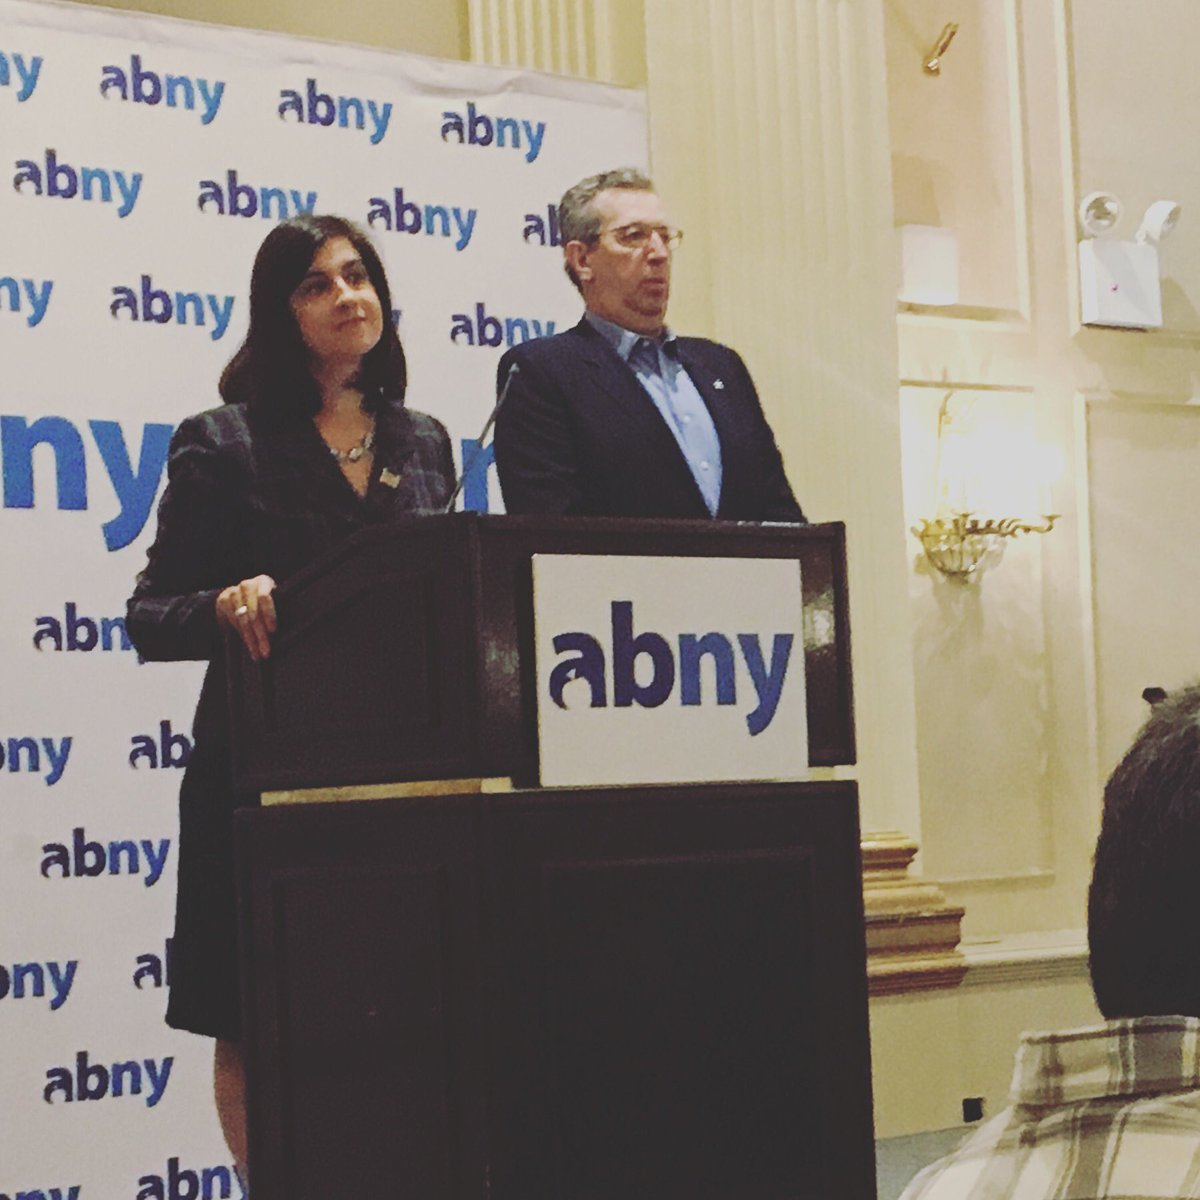 NYC Mayoral Candidate, Nicole Malliotakis addresses the crowd at  the @abetterny #powerbreakfast. https://t.co/SlQkAx1MH3